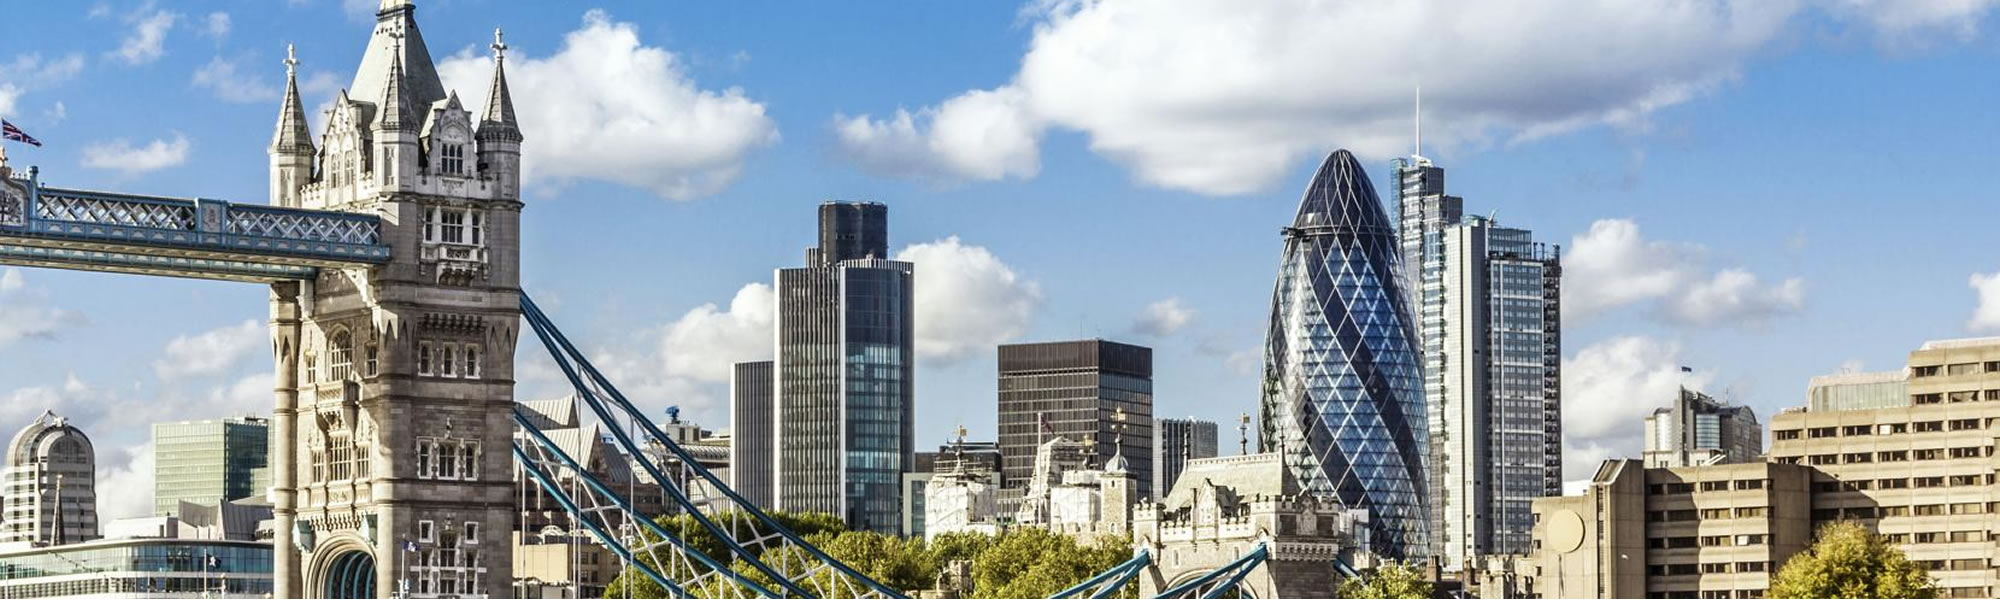 Cheap Hotels In Central London With Parking